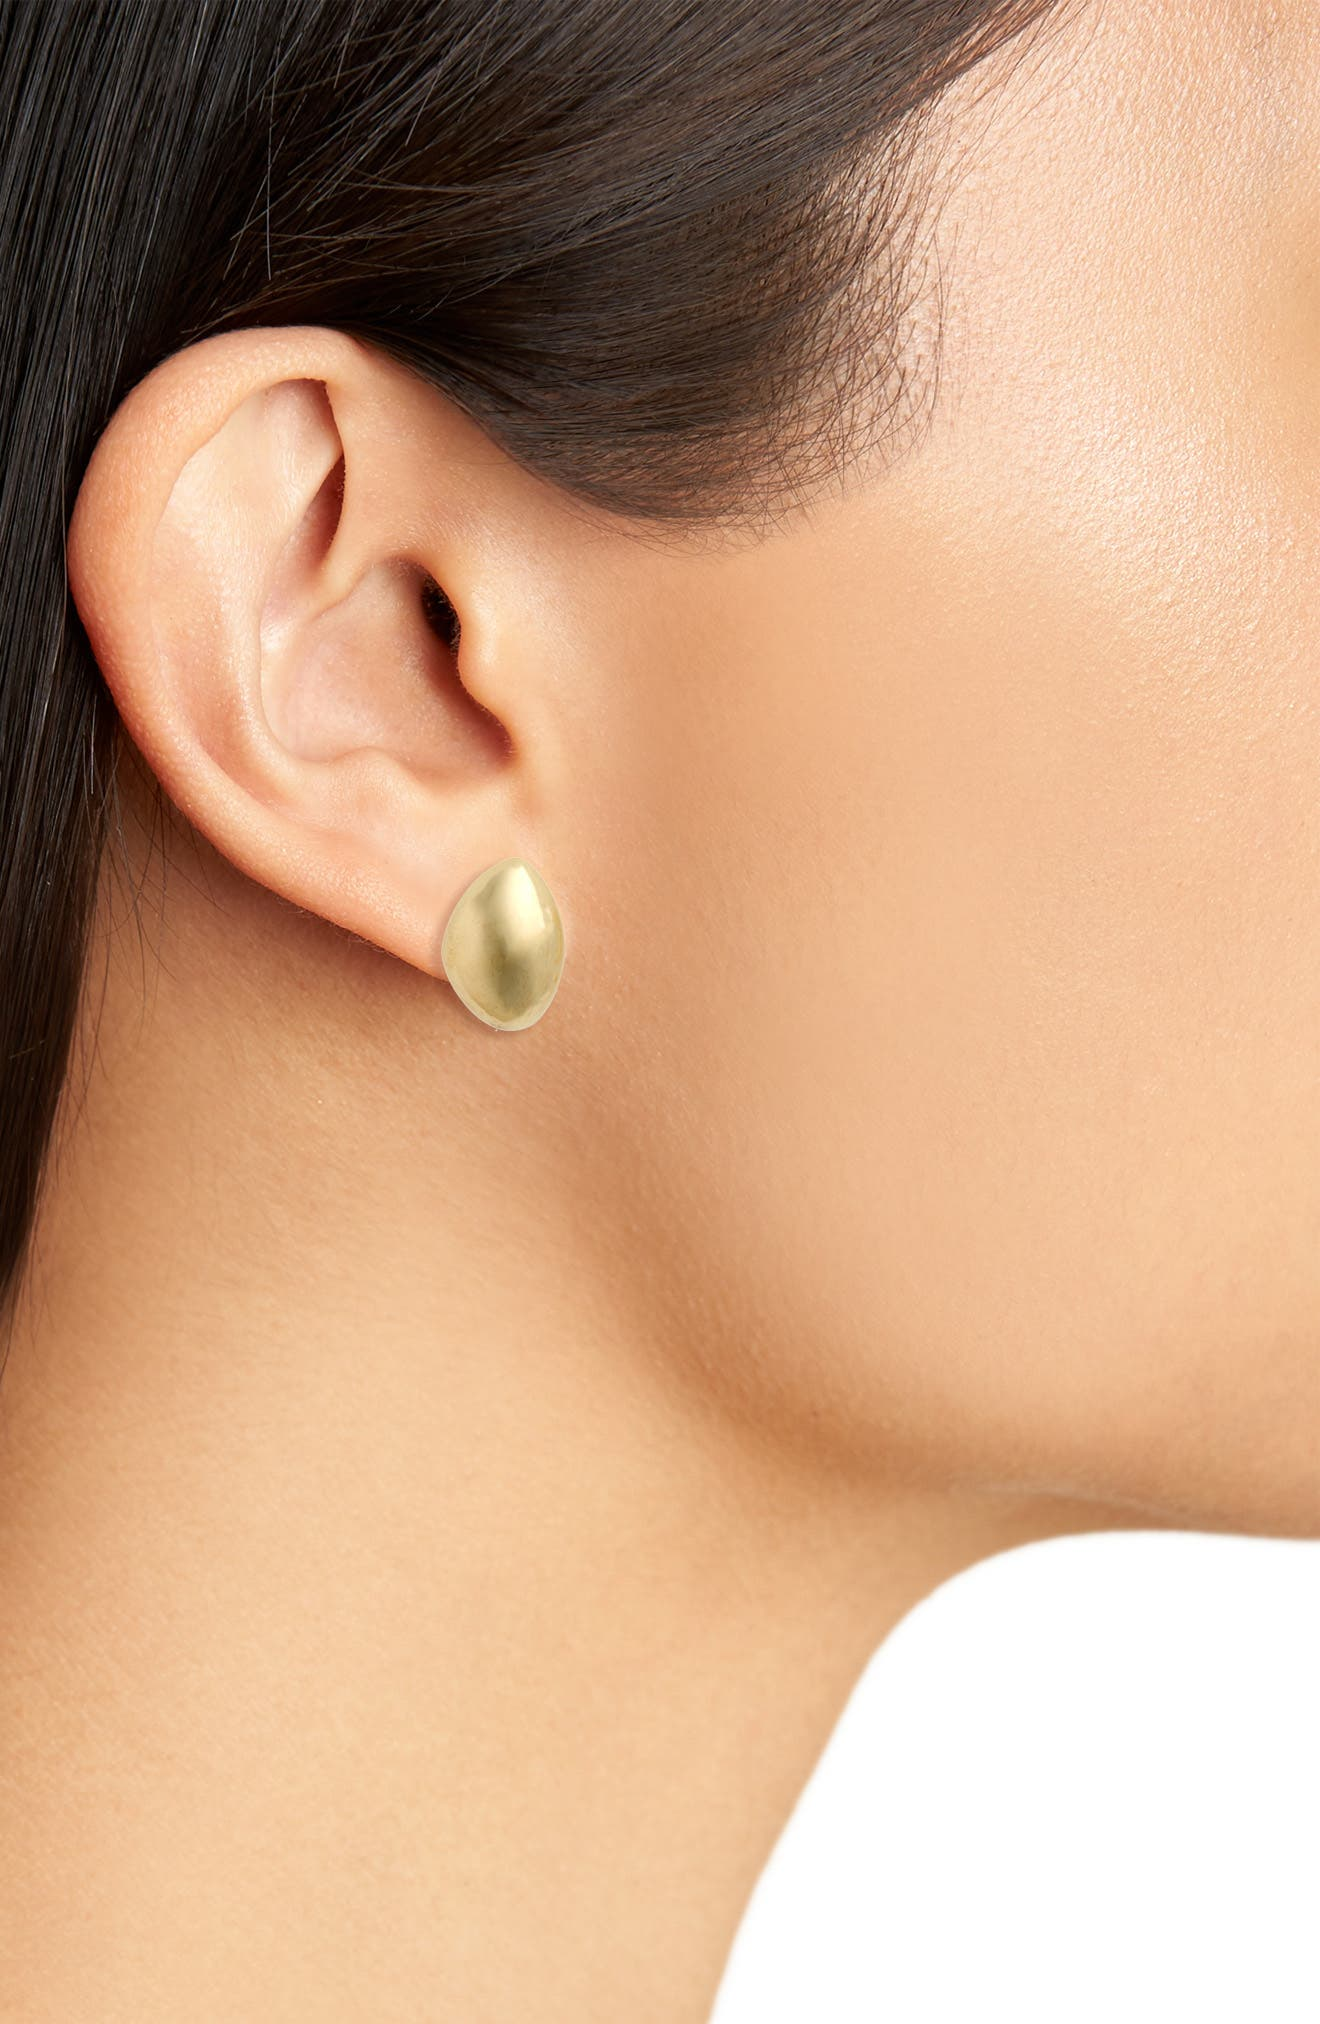 Sabi Stud Earrings,                             Alternate thumbnail 2, color,                             Brass